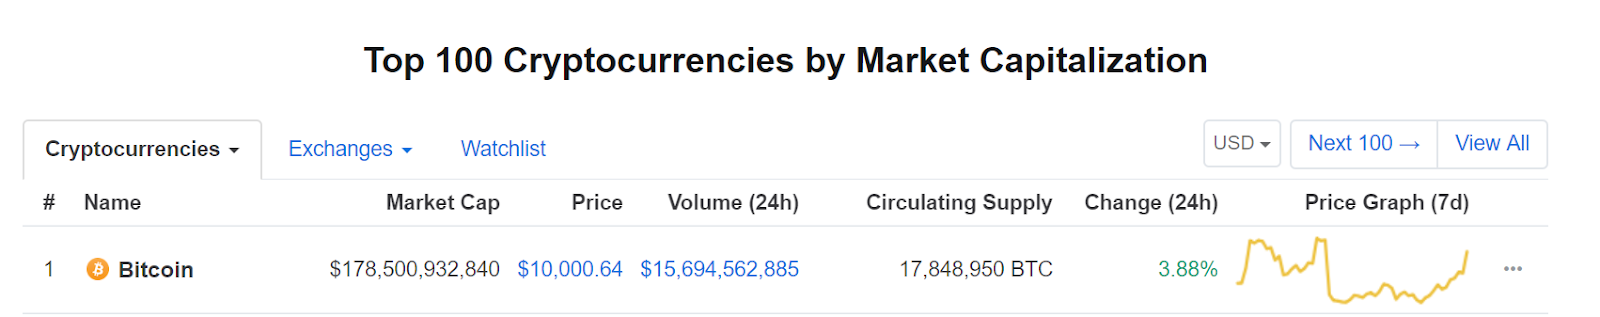 Infographic courtesy of CoinMarketCap